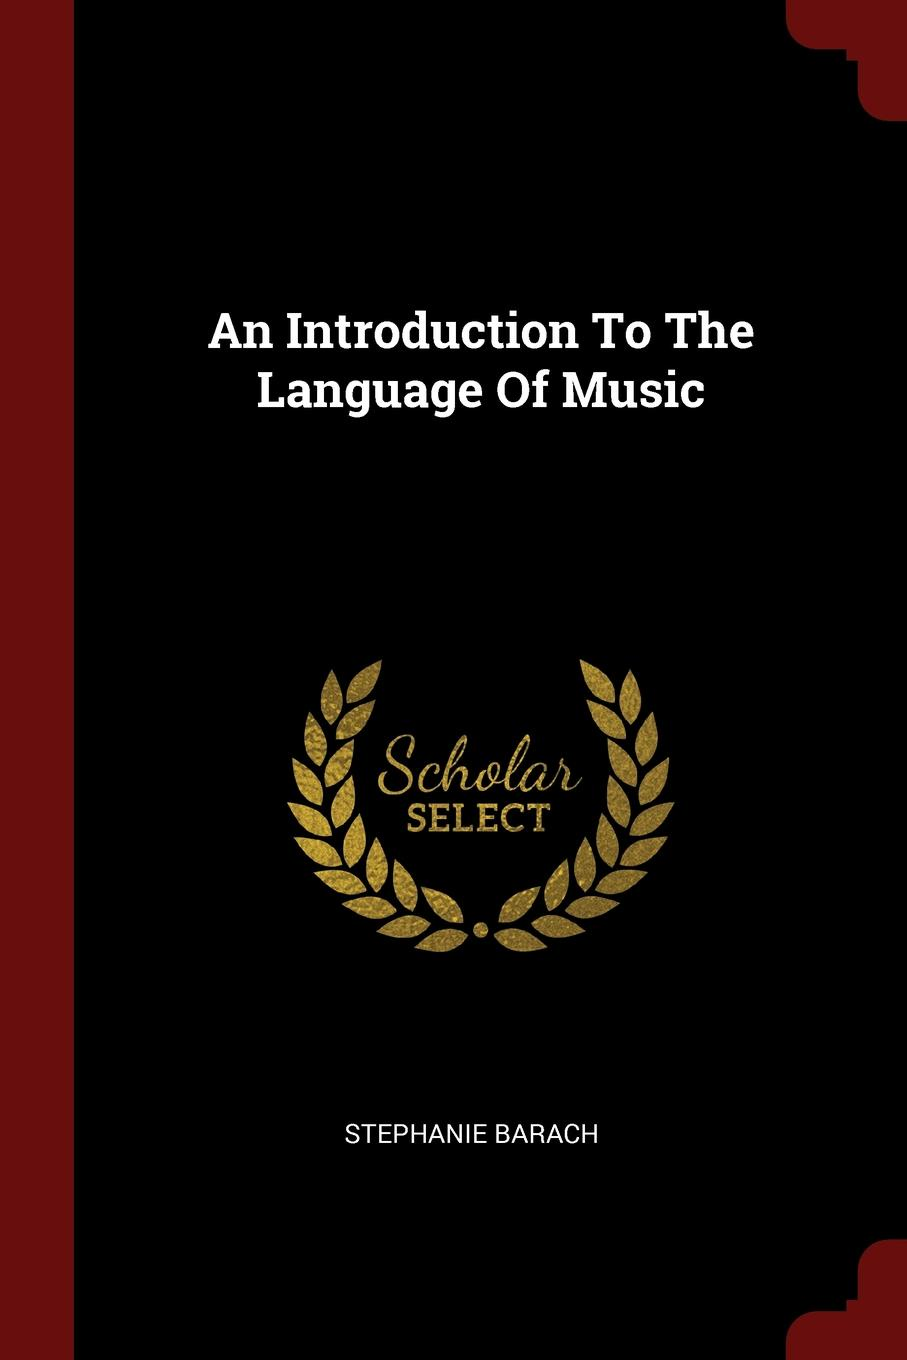 An Introduction To The Language Of Music